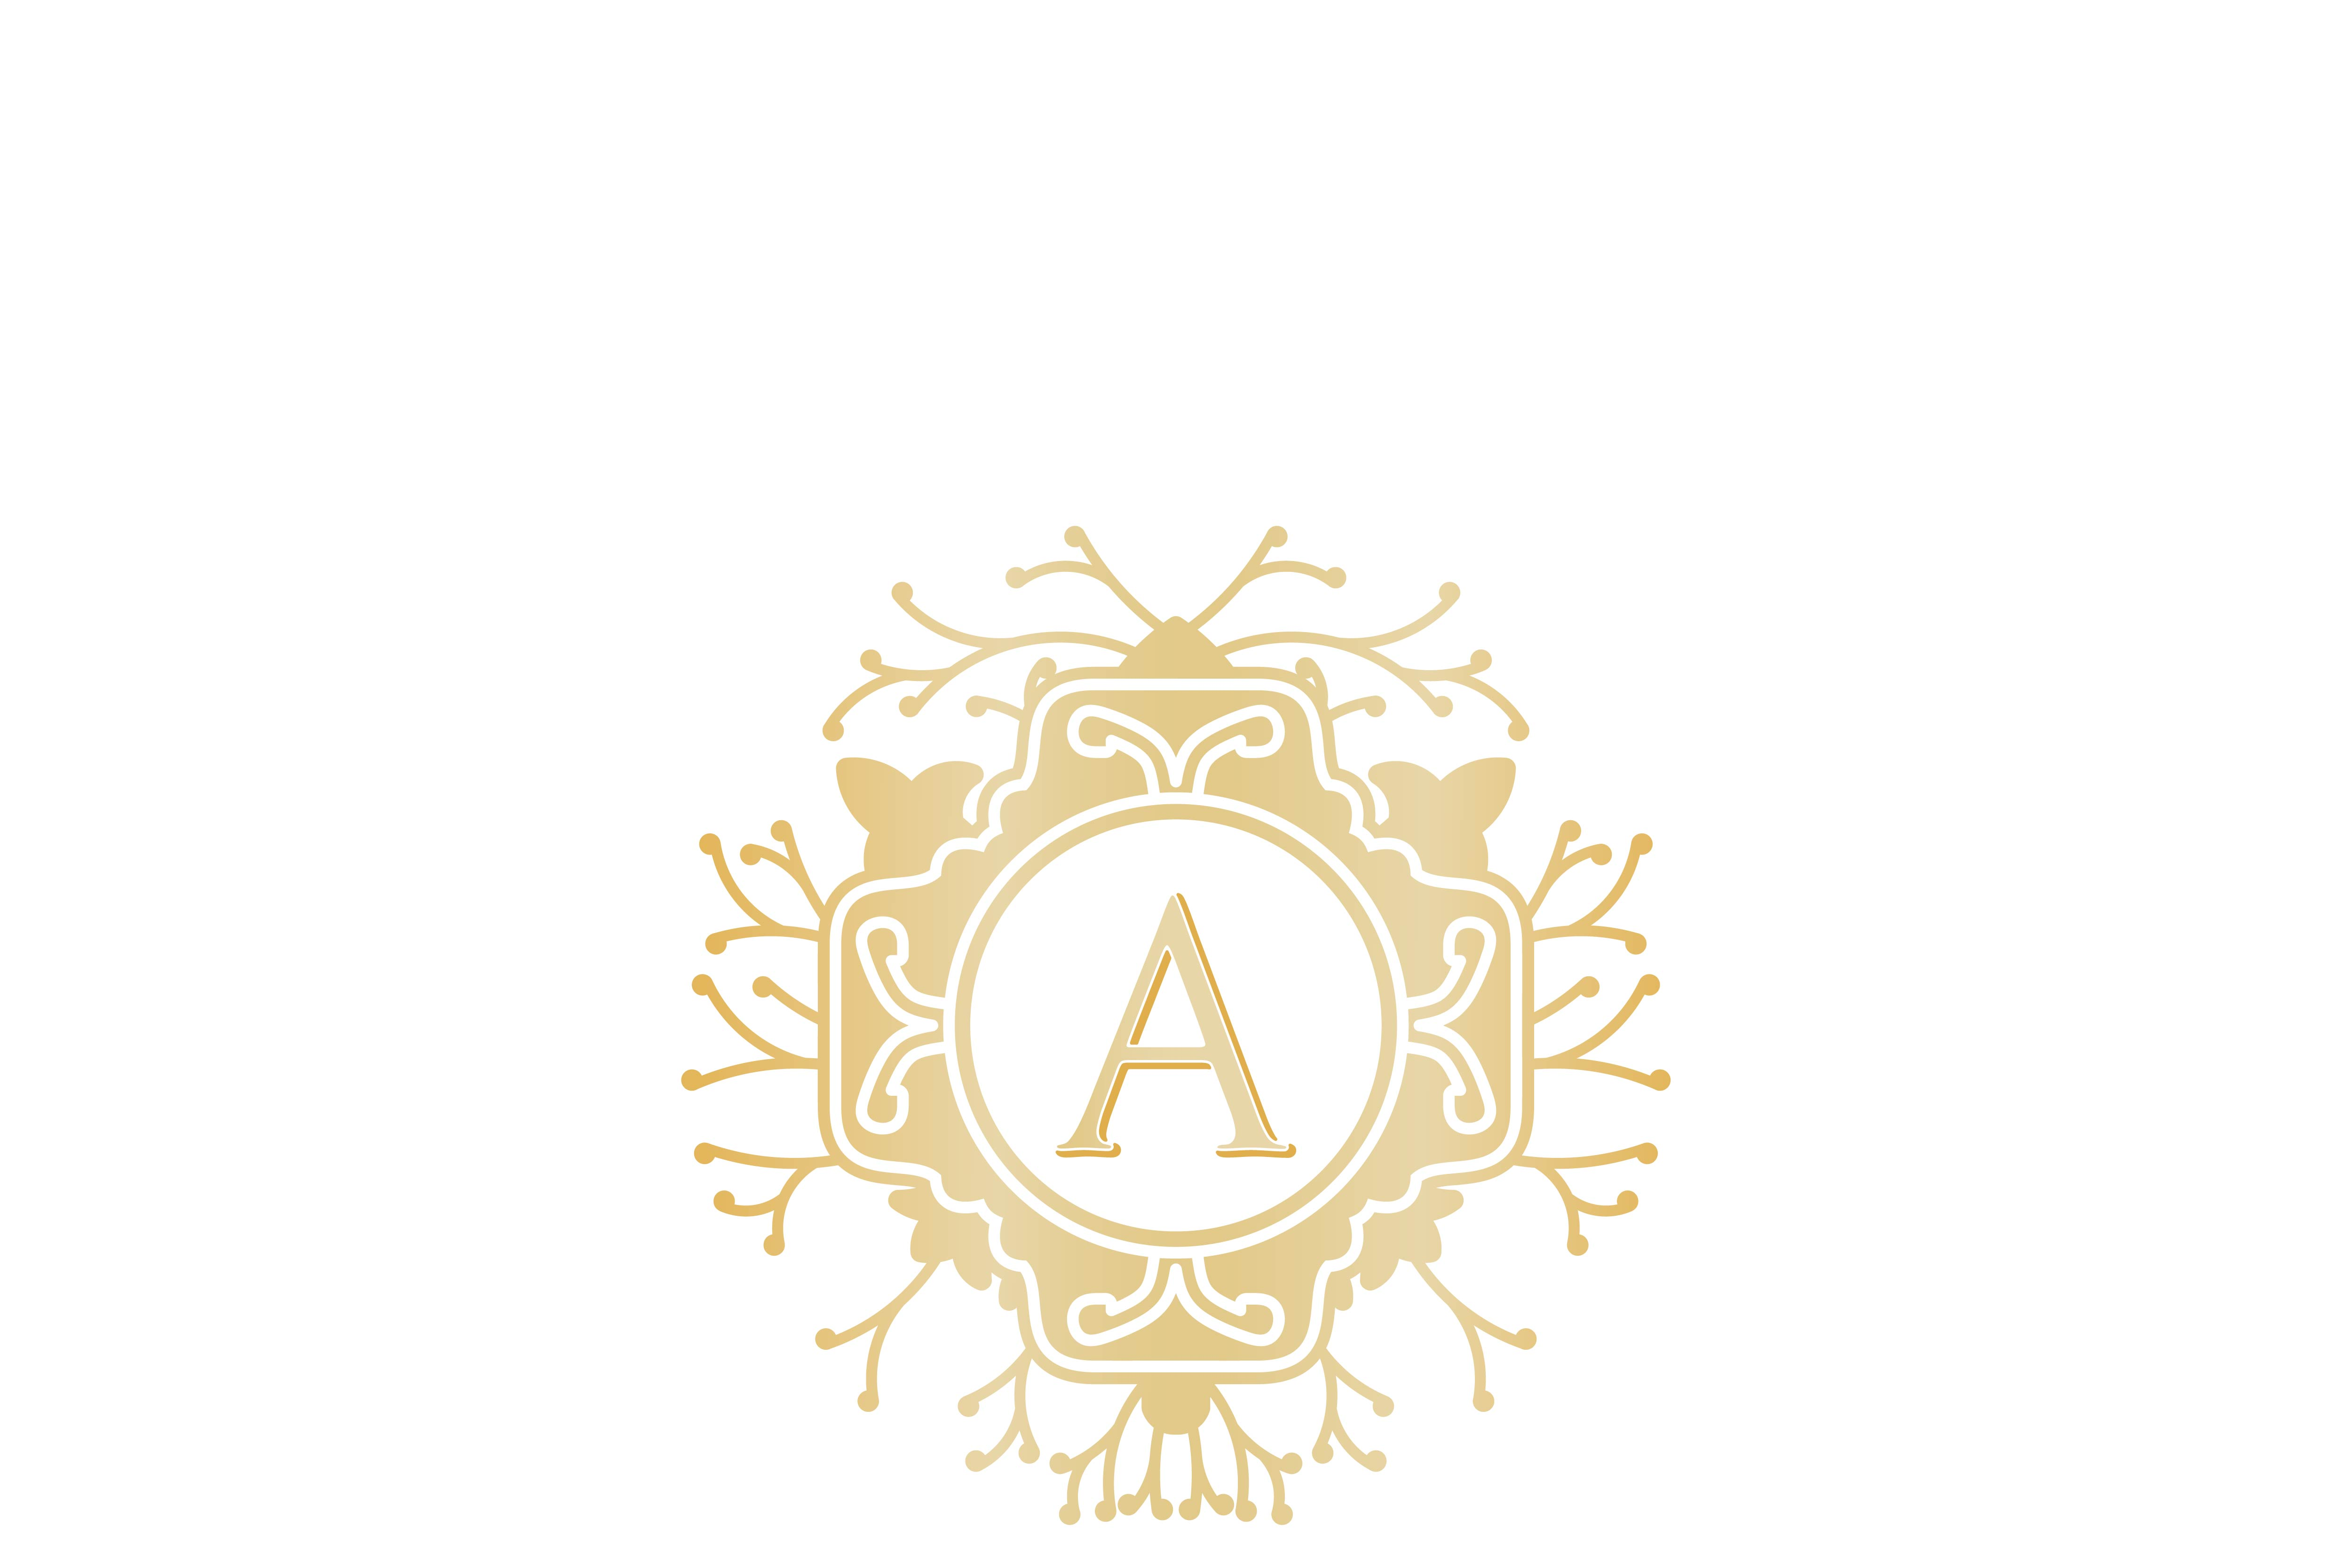 Download Free Initial A Wedding Boutique Logo Graphic By Yahyaanasatokillah for Cricut Explore, Silhouette and other cutting machines.